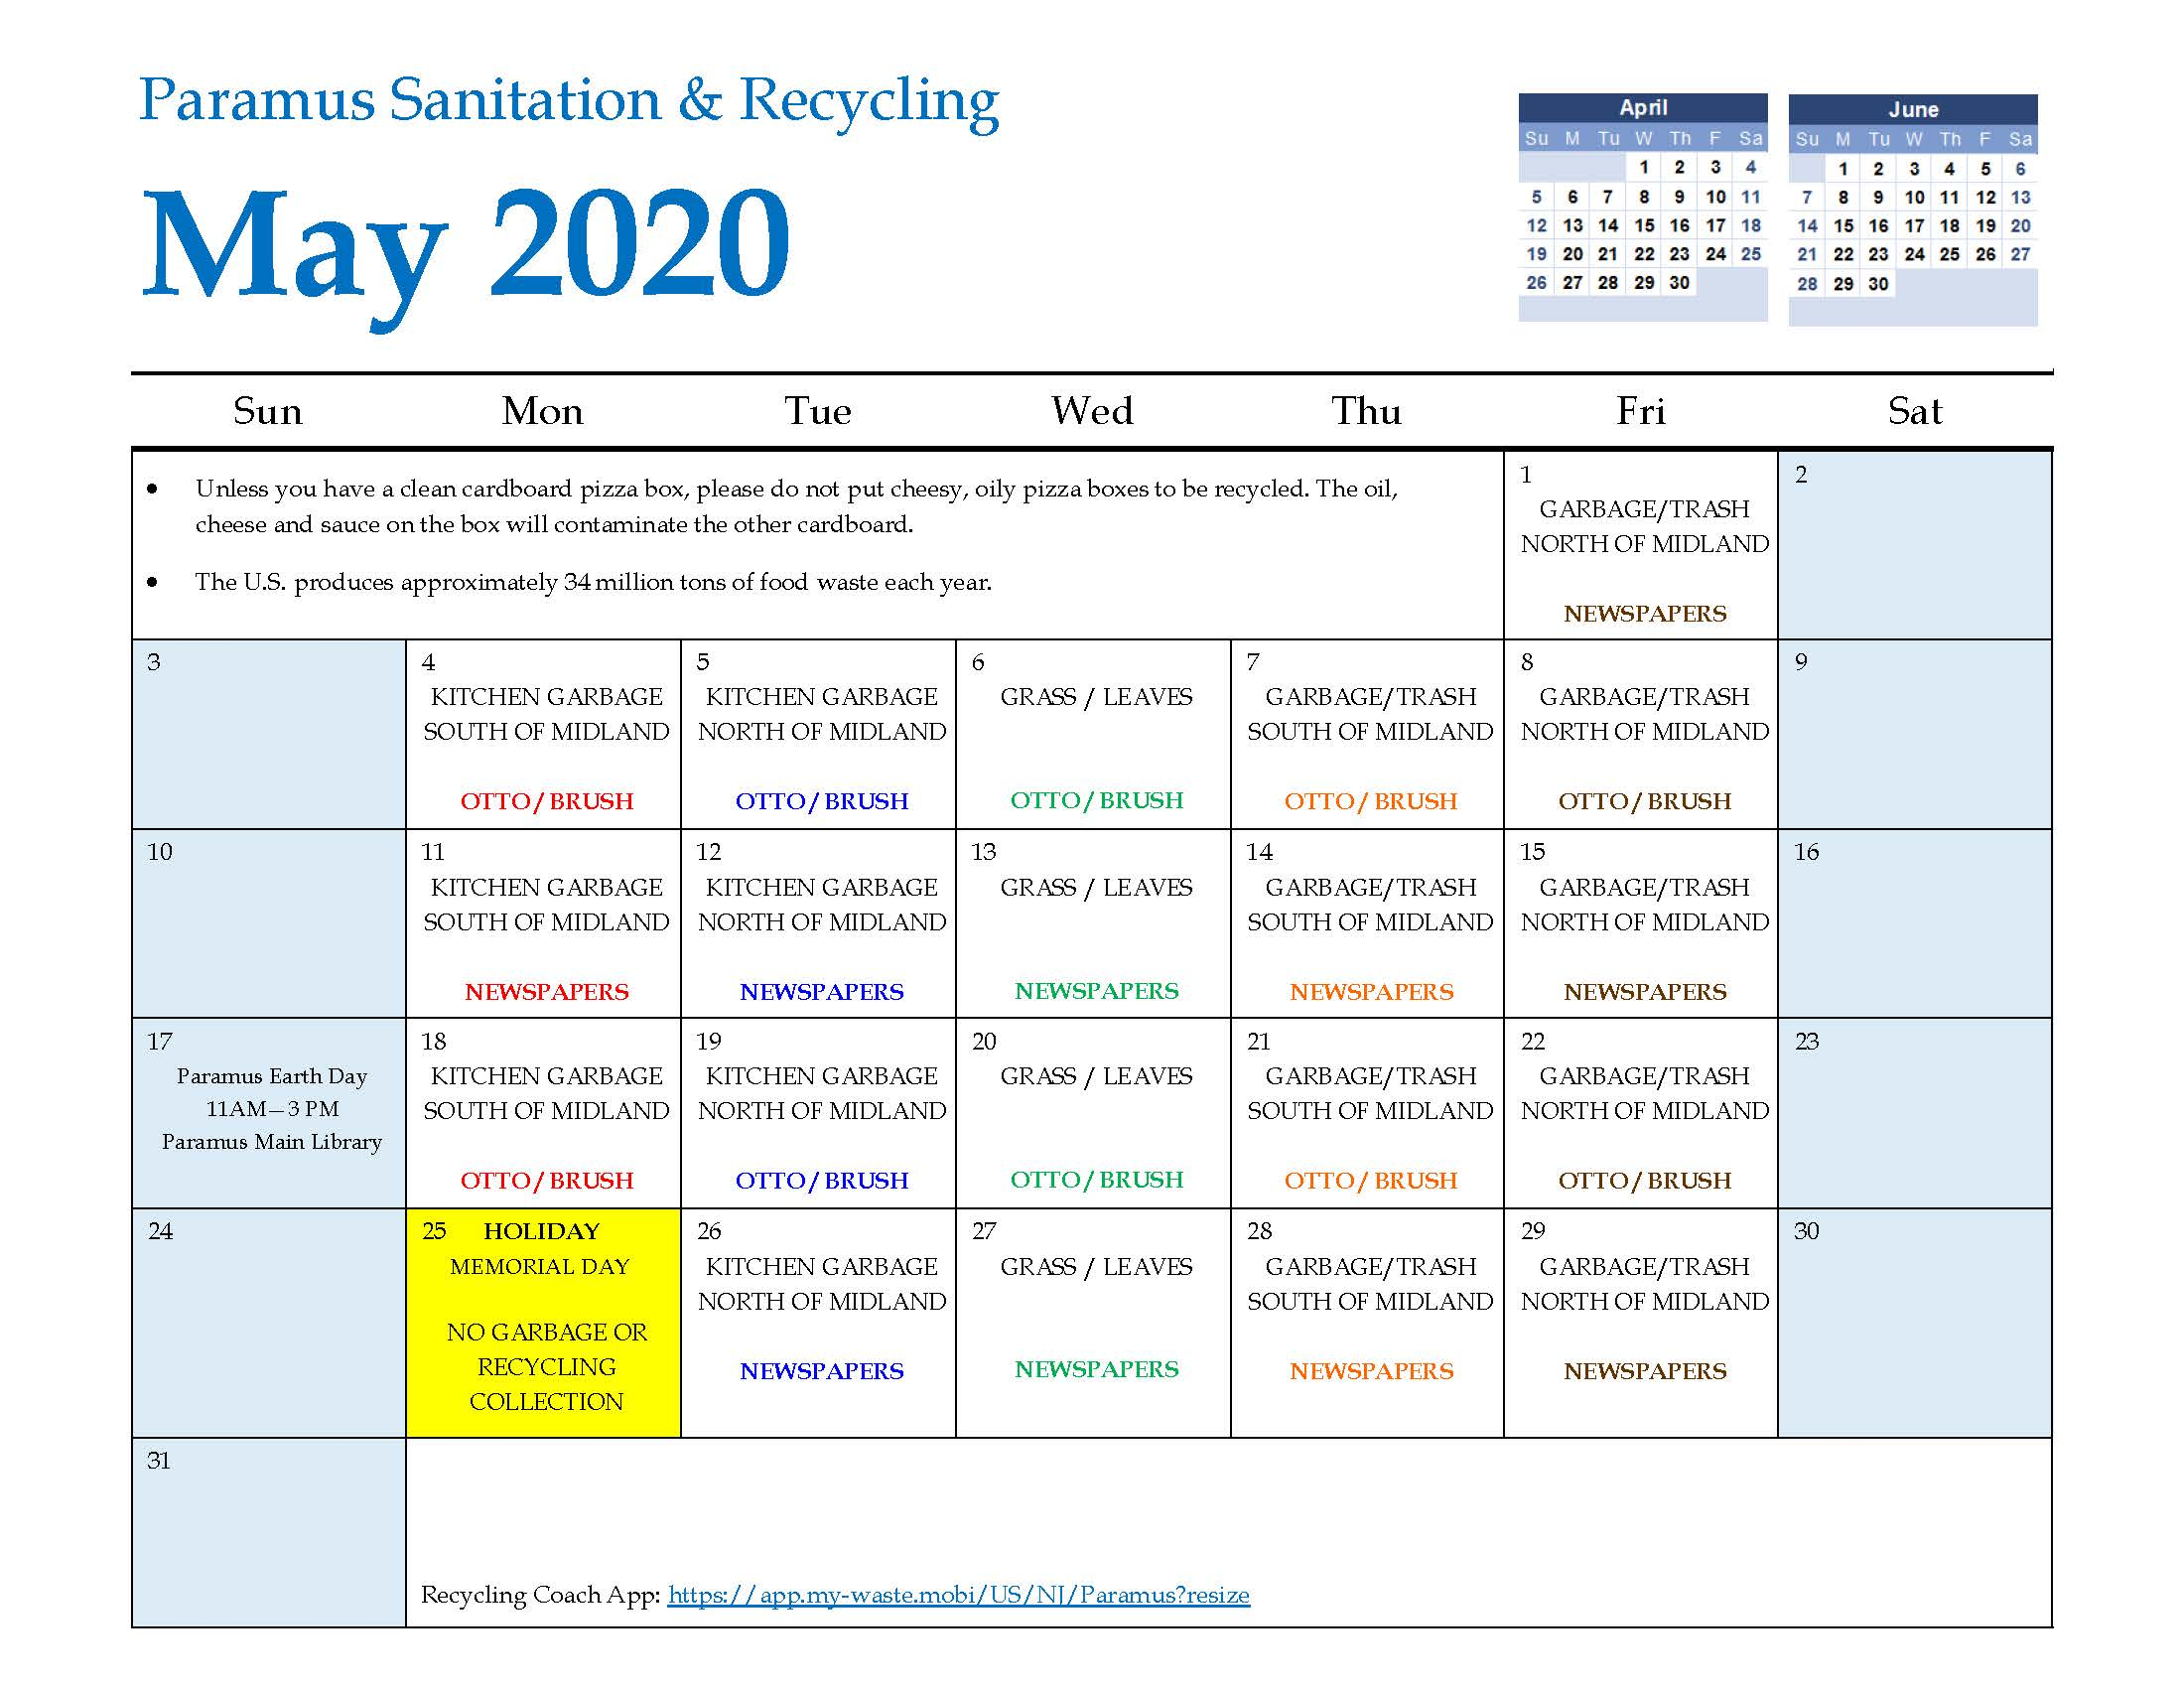 2020 Paramus Recycling Calendar May